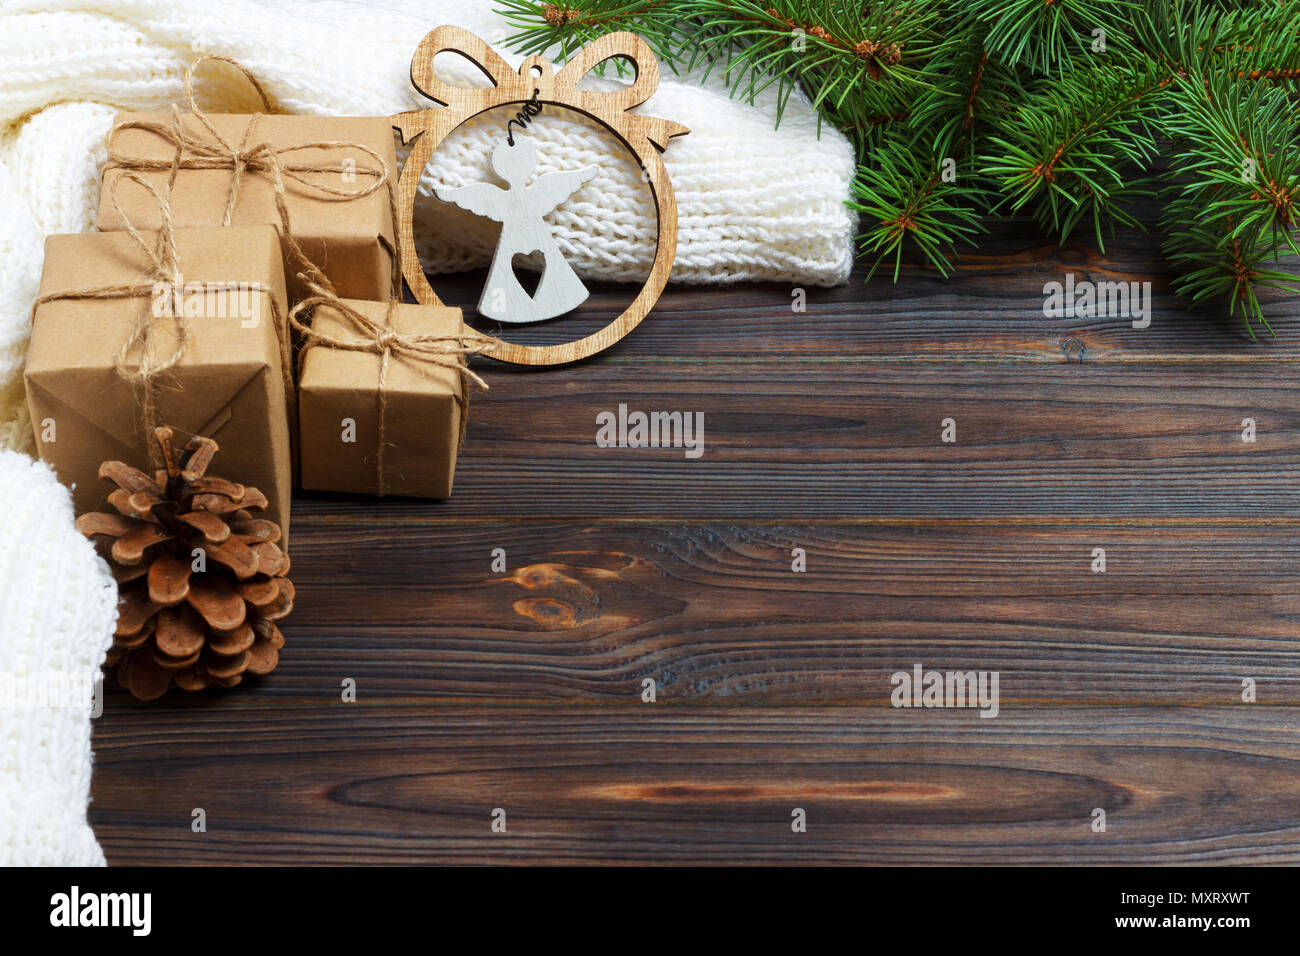 Wrapped christmas gifts with white angel on dark rustic wooden table